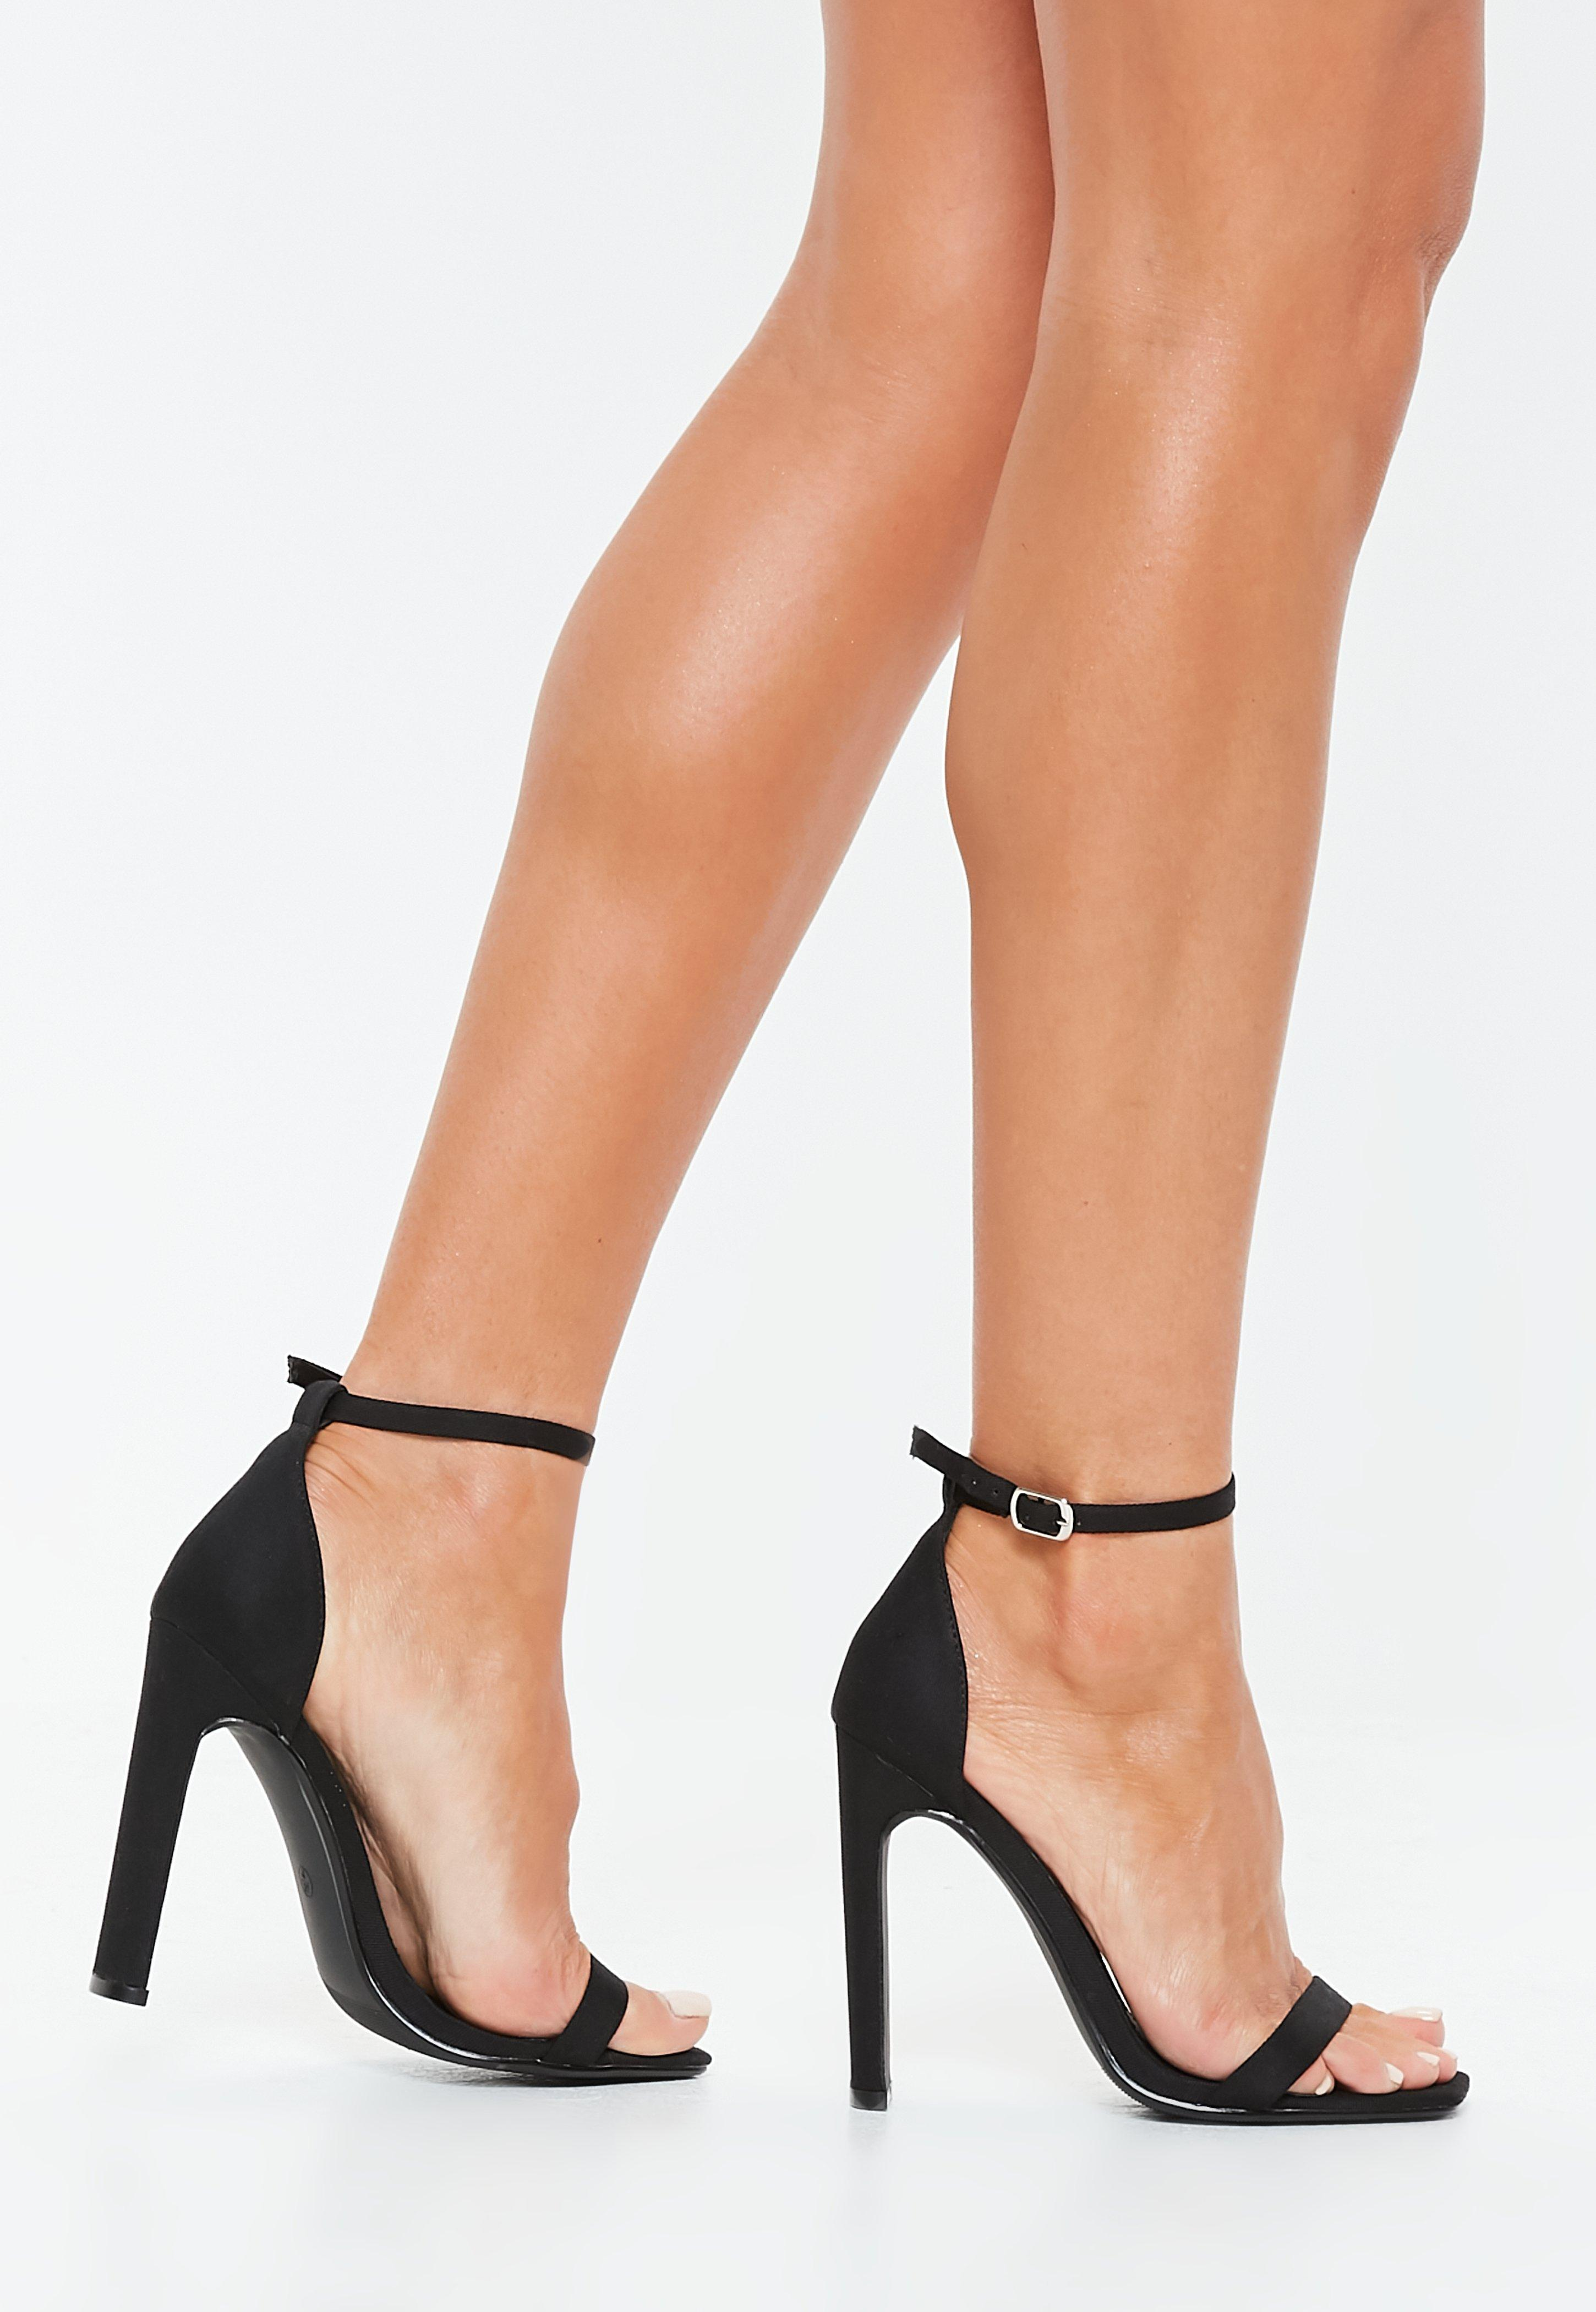 aaef86529141 Black Canvas Square Toe Barely There Heels